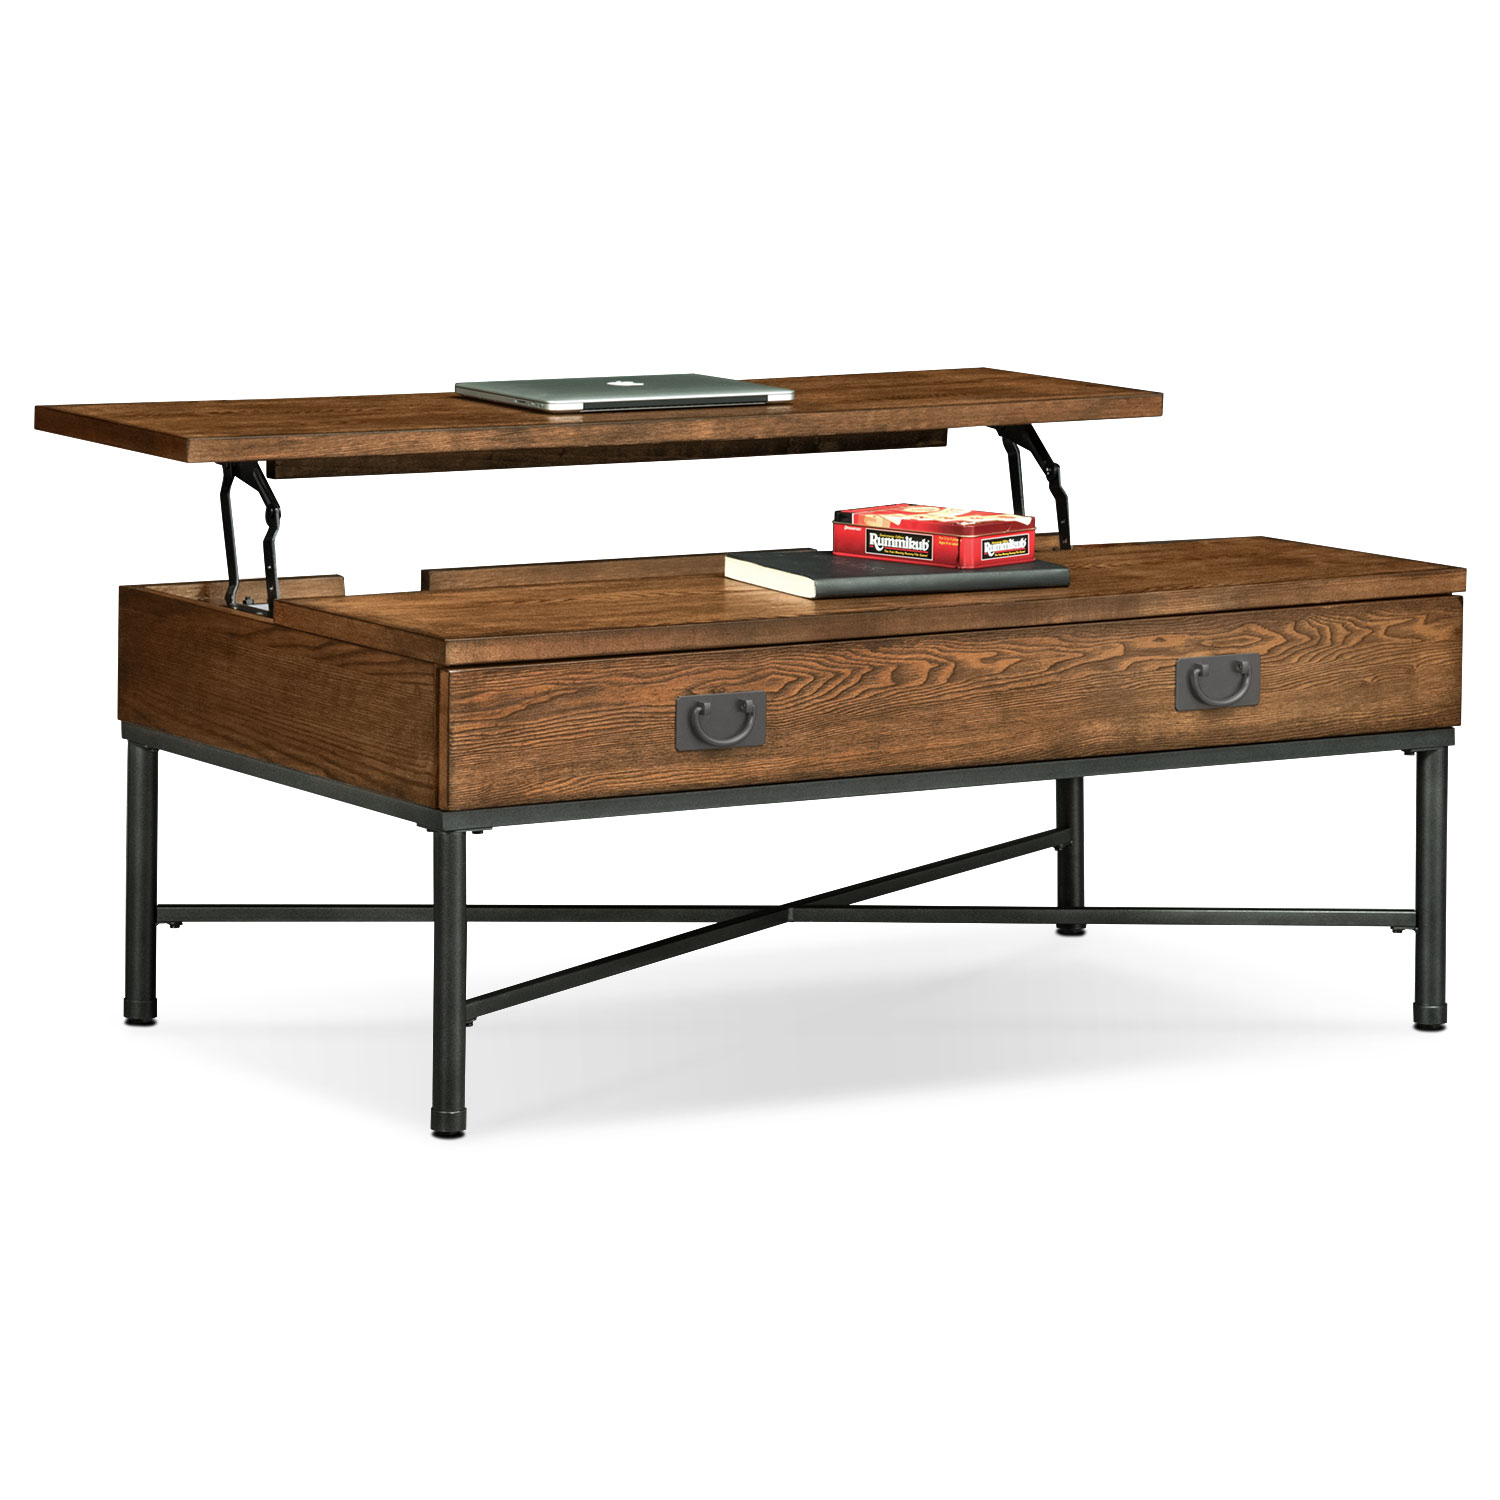 shipyard lift top cocktail table nutmeg value city furniture and coffee end sets click change plans free vintage marble dark cherry accent tables file cabinet dimensions art van